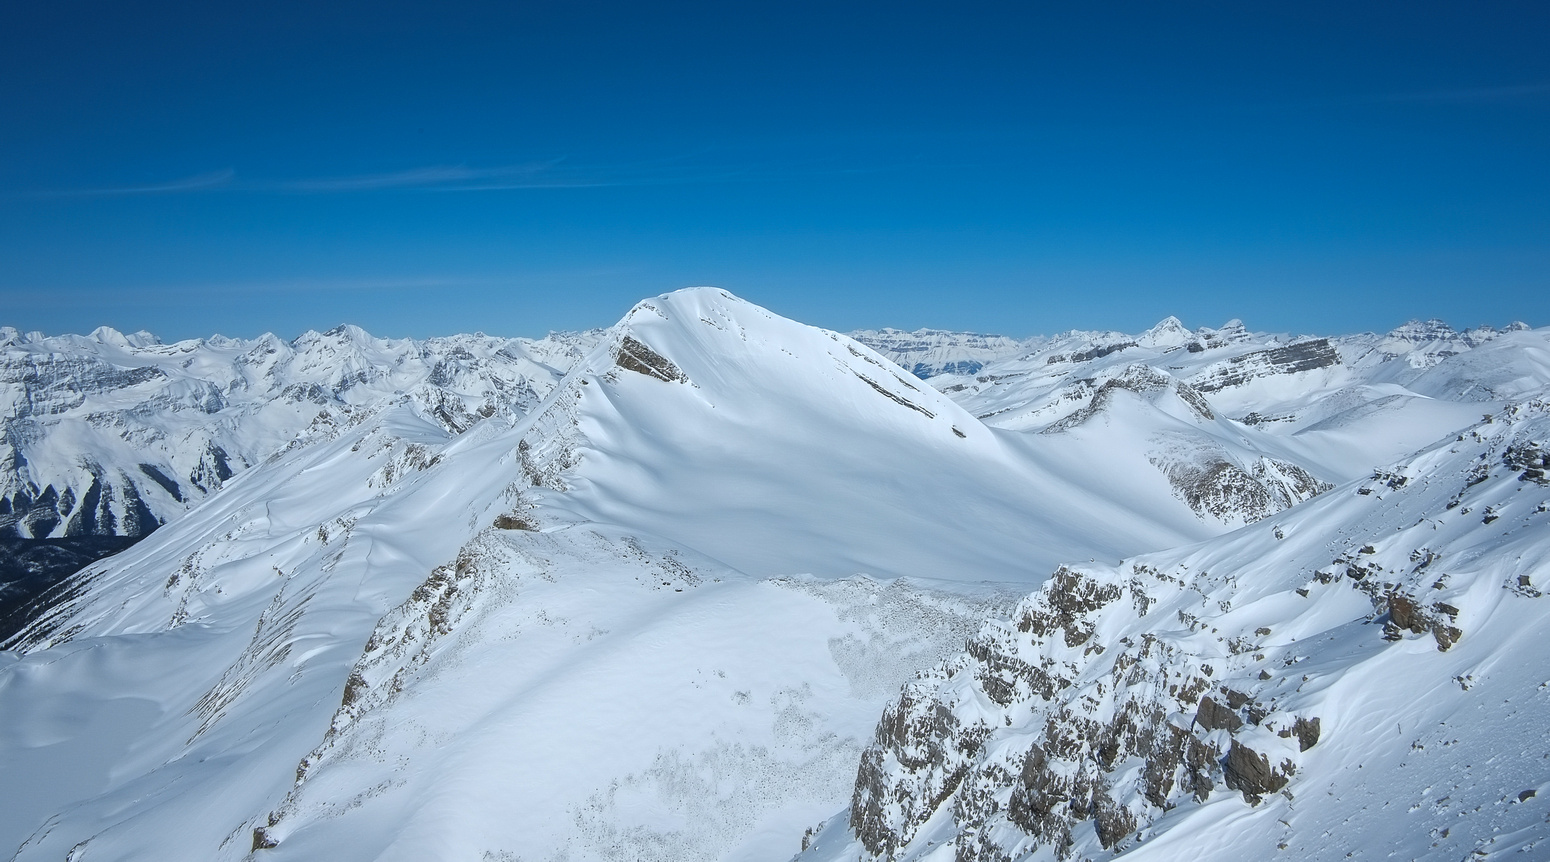 Mount Baker from the summit.